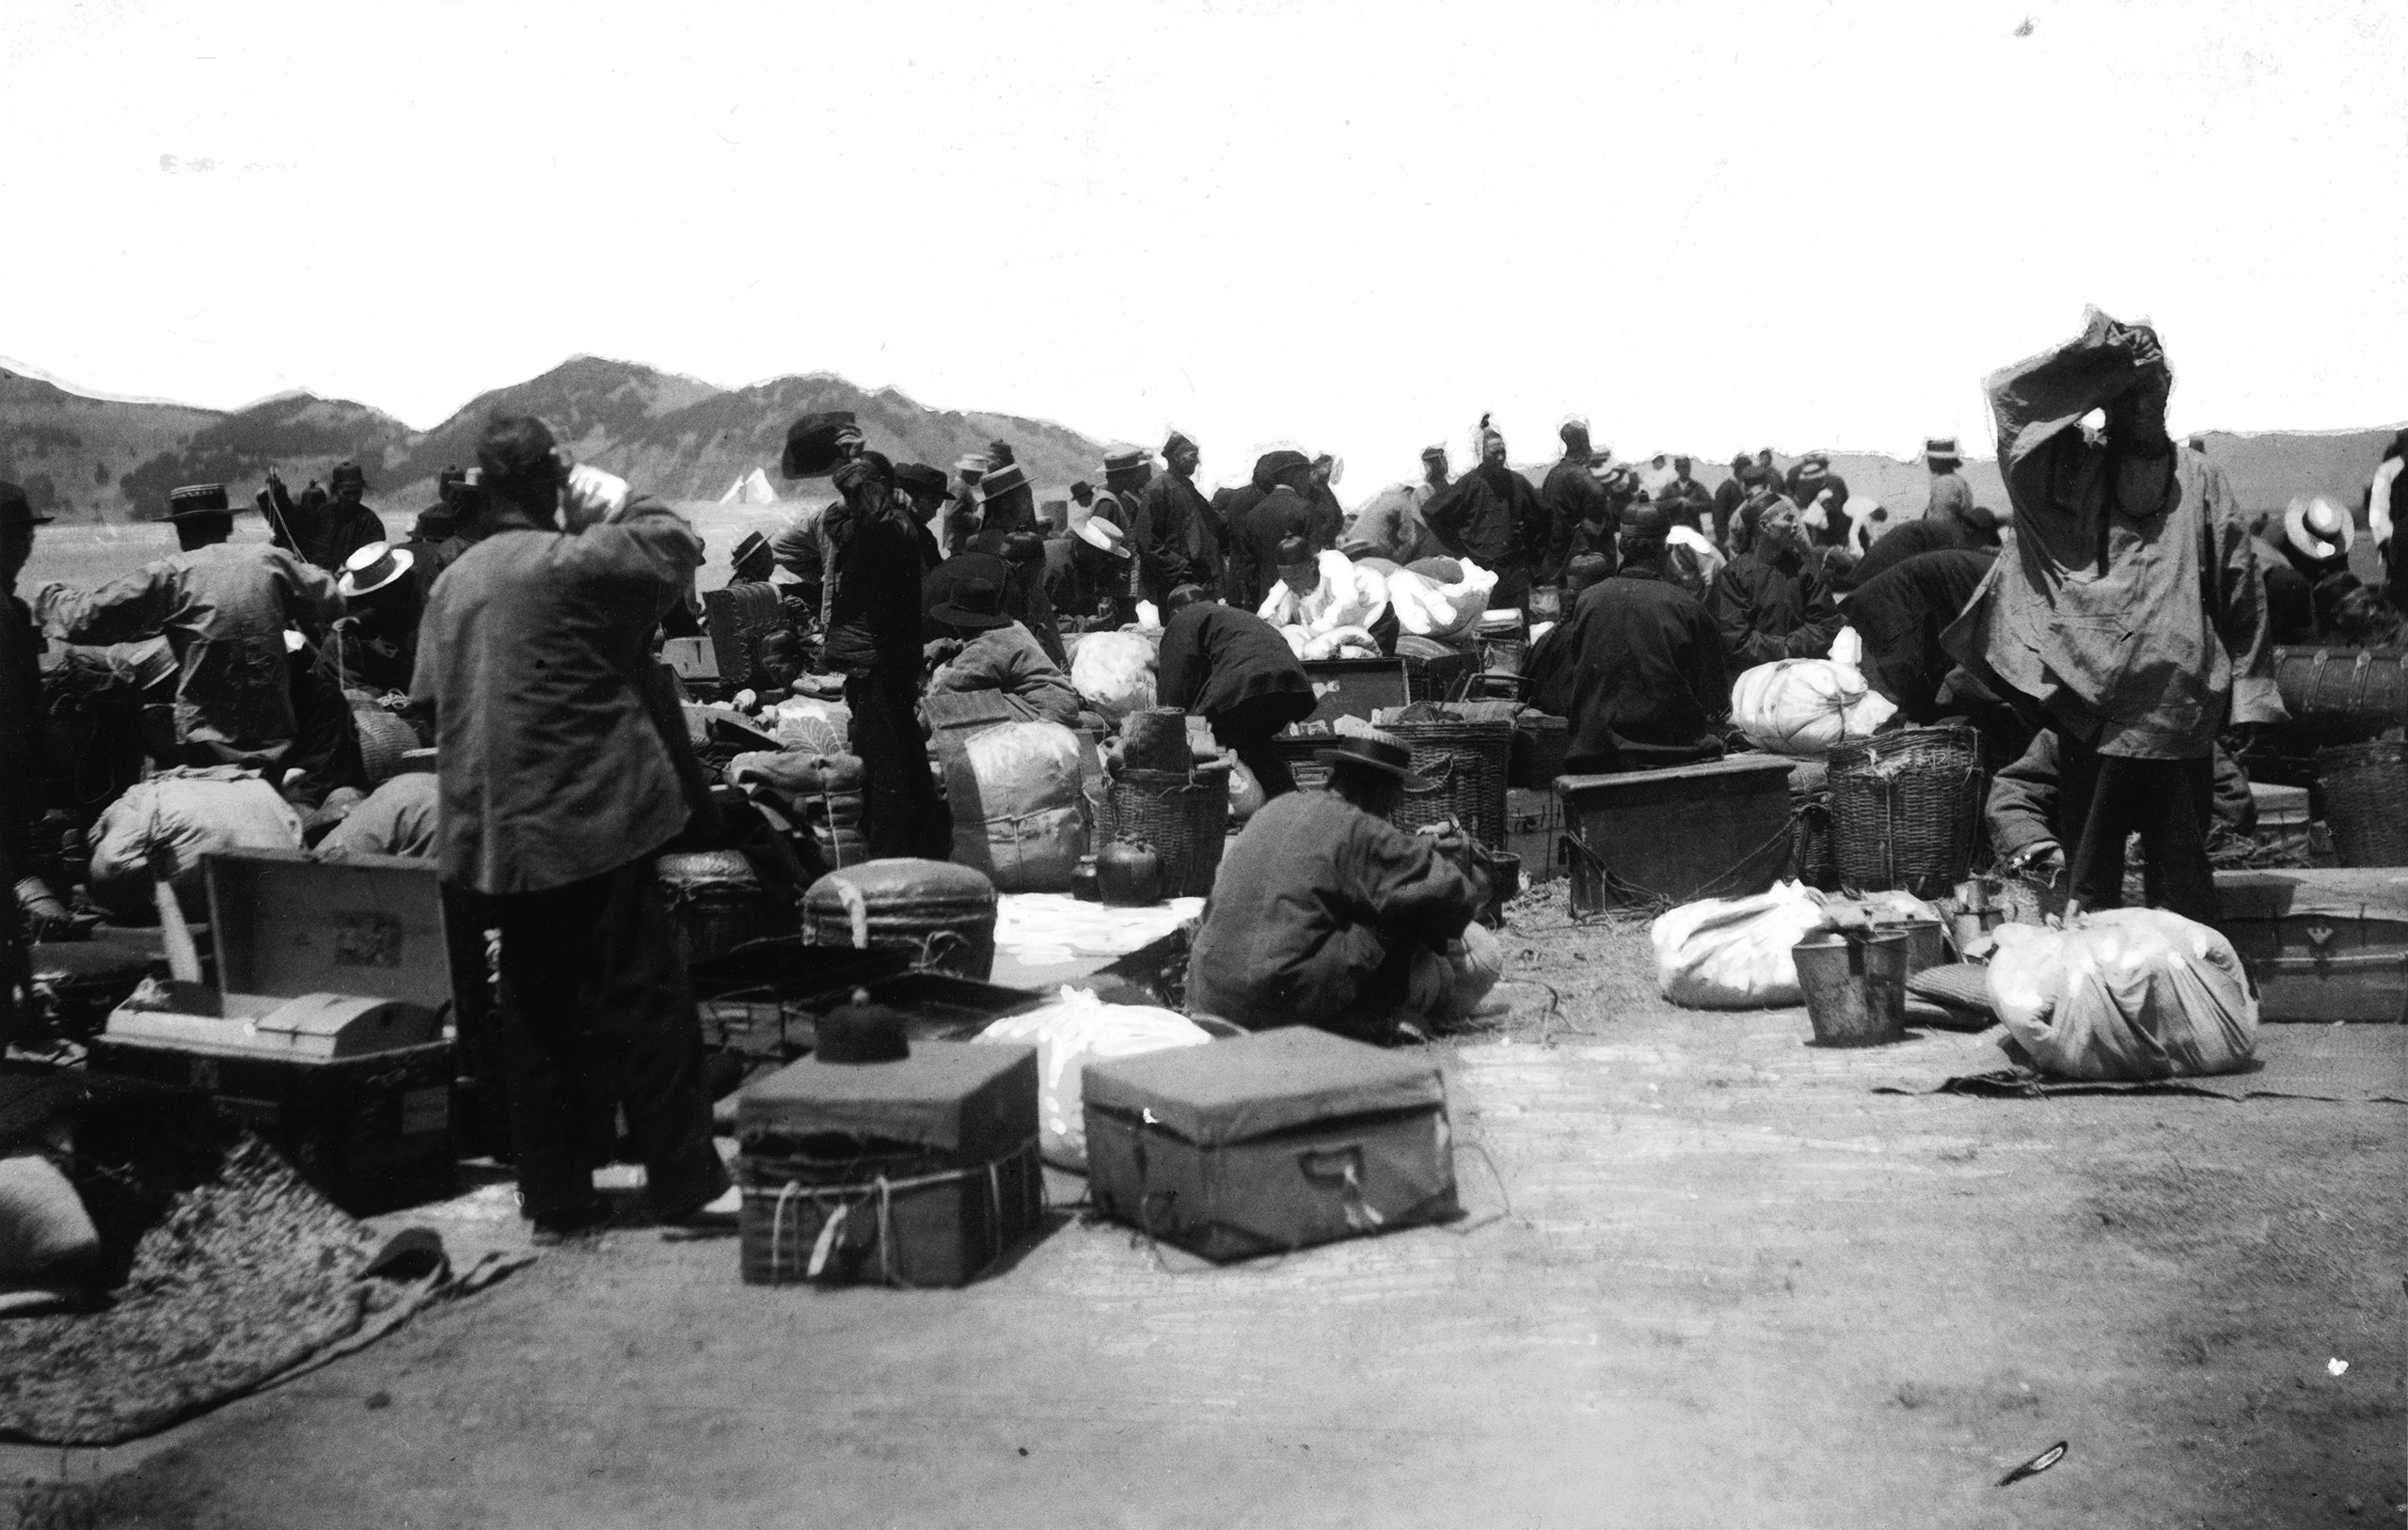 A group of  Chinese and East Asian immigrants wait on a wharf after disinfection at Angel Island, San Francisco Bay, California, ca. 1910s.